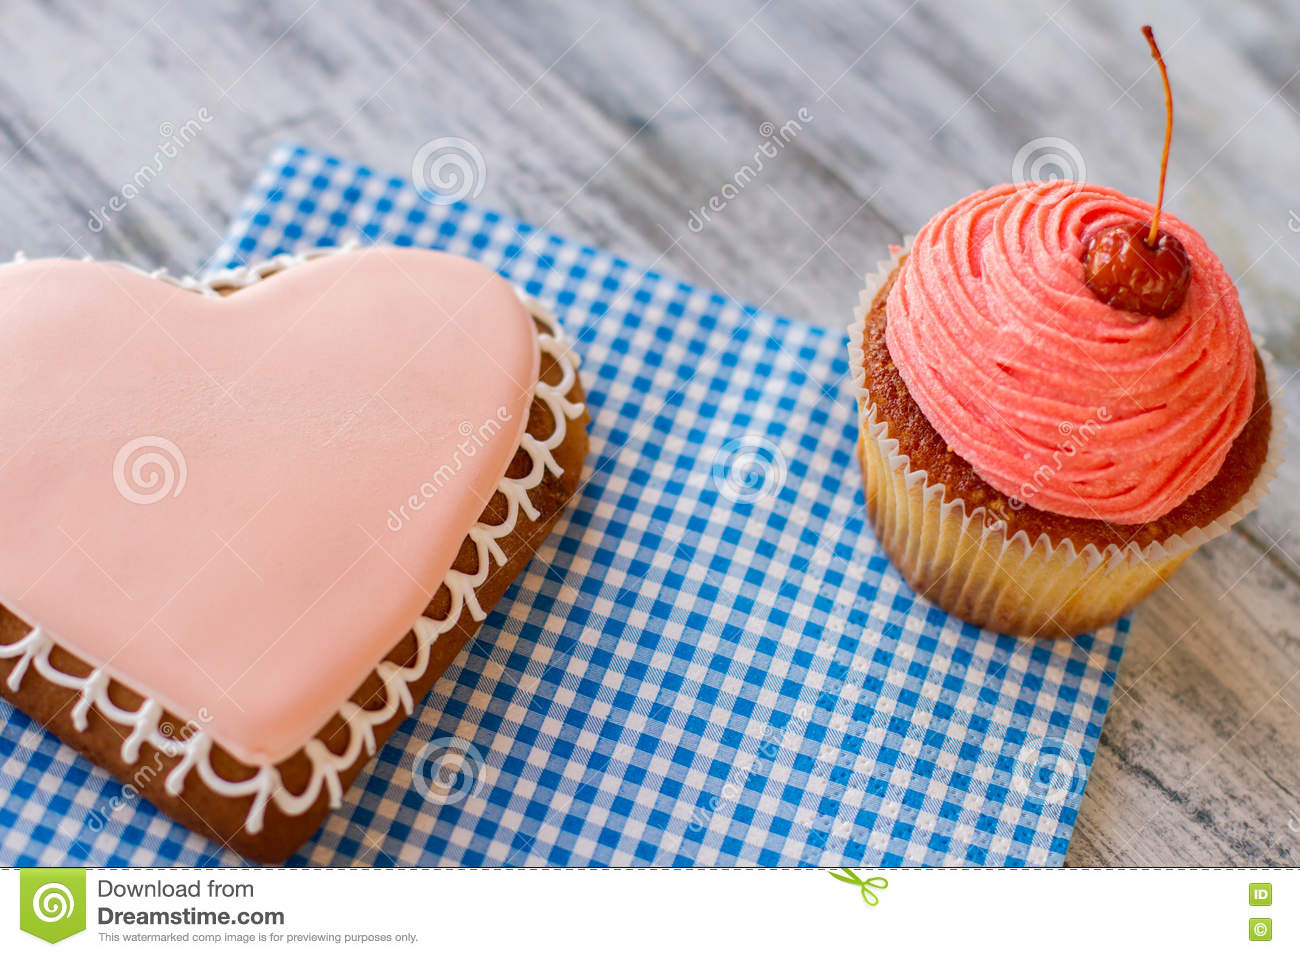 Pink cupcake and heart cookie.